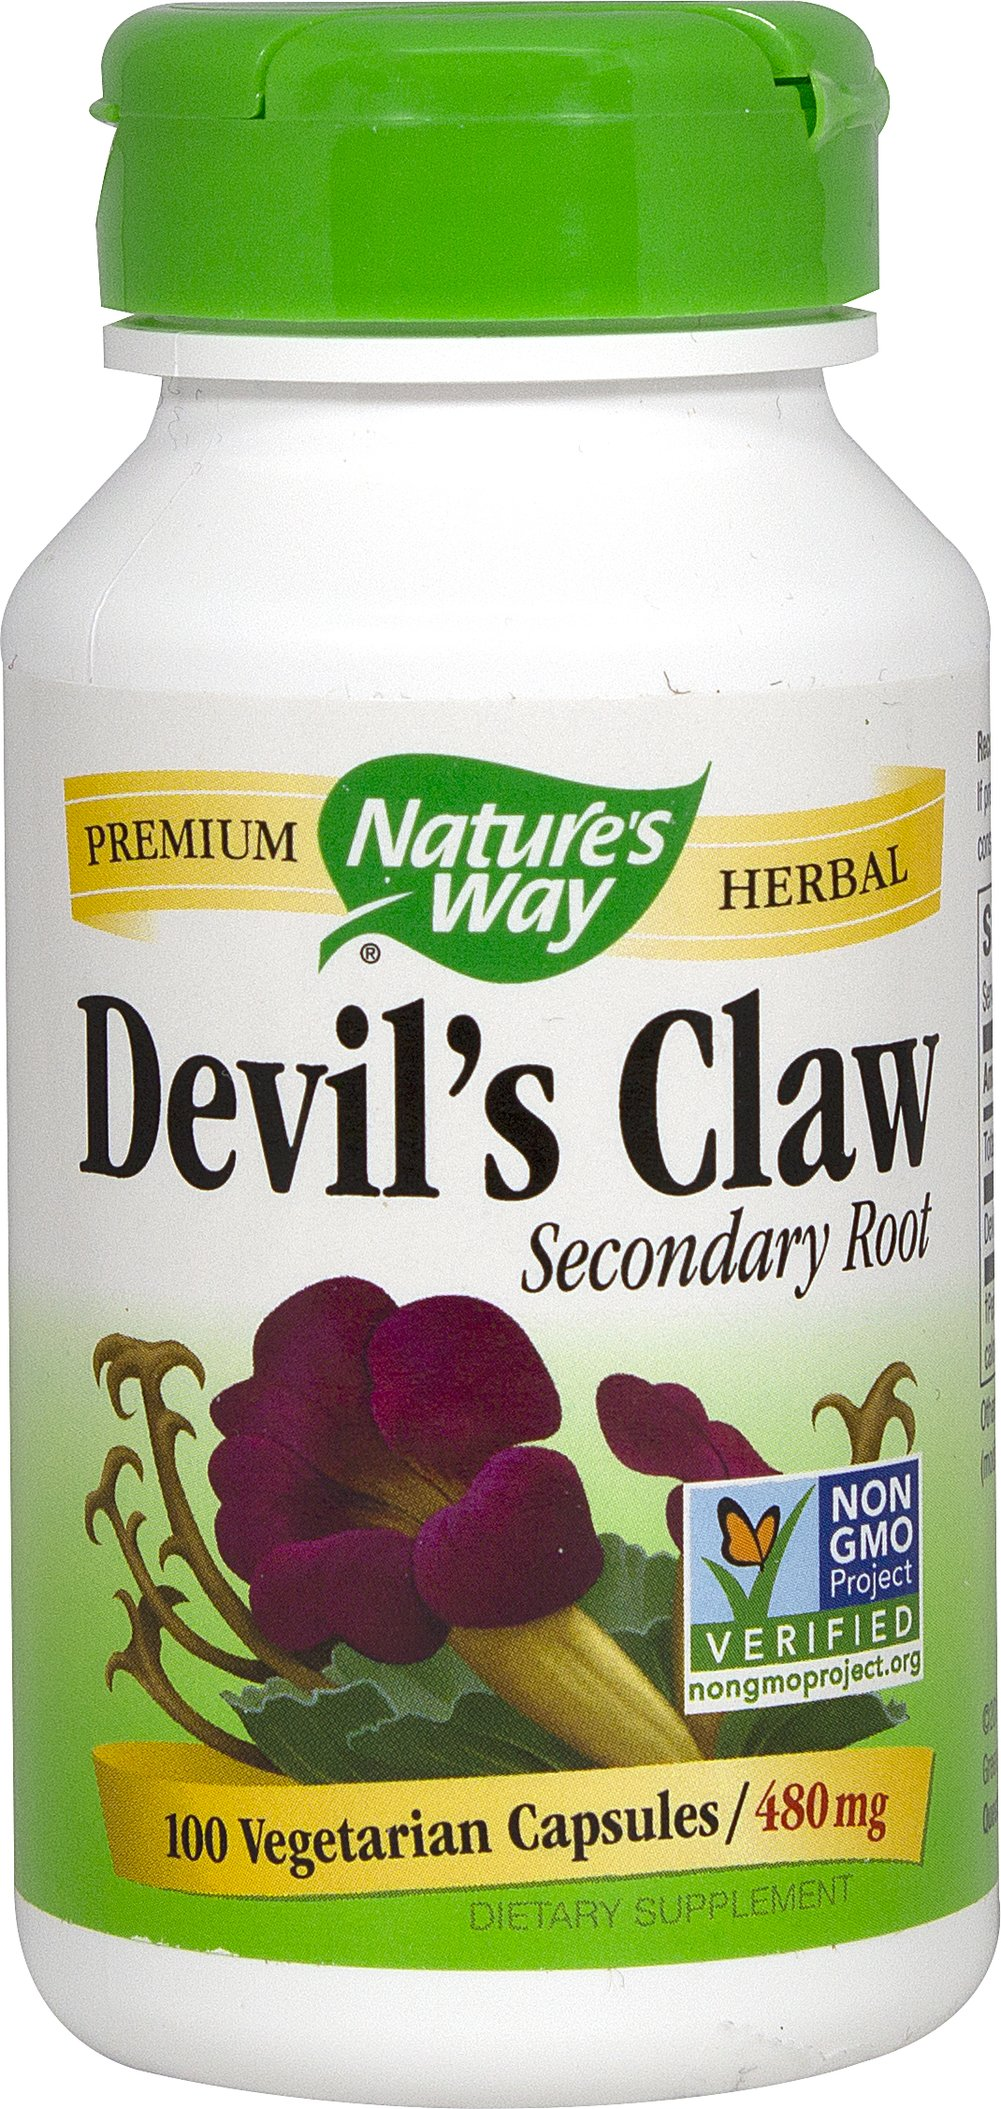 Devil's Claw 480 mg Thumbnail Alternate Bottle View